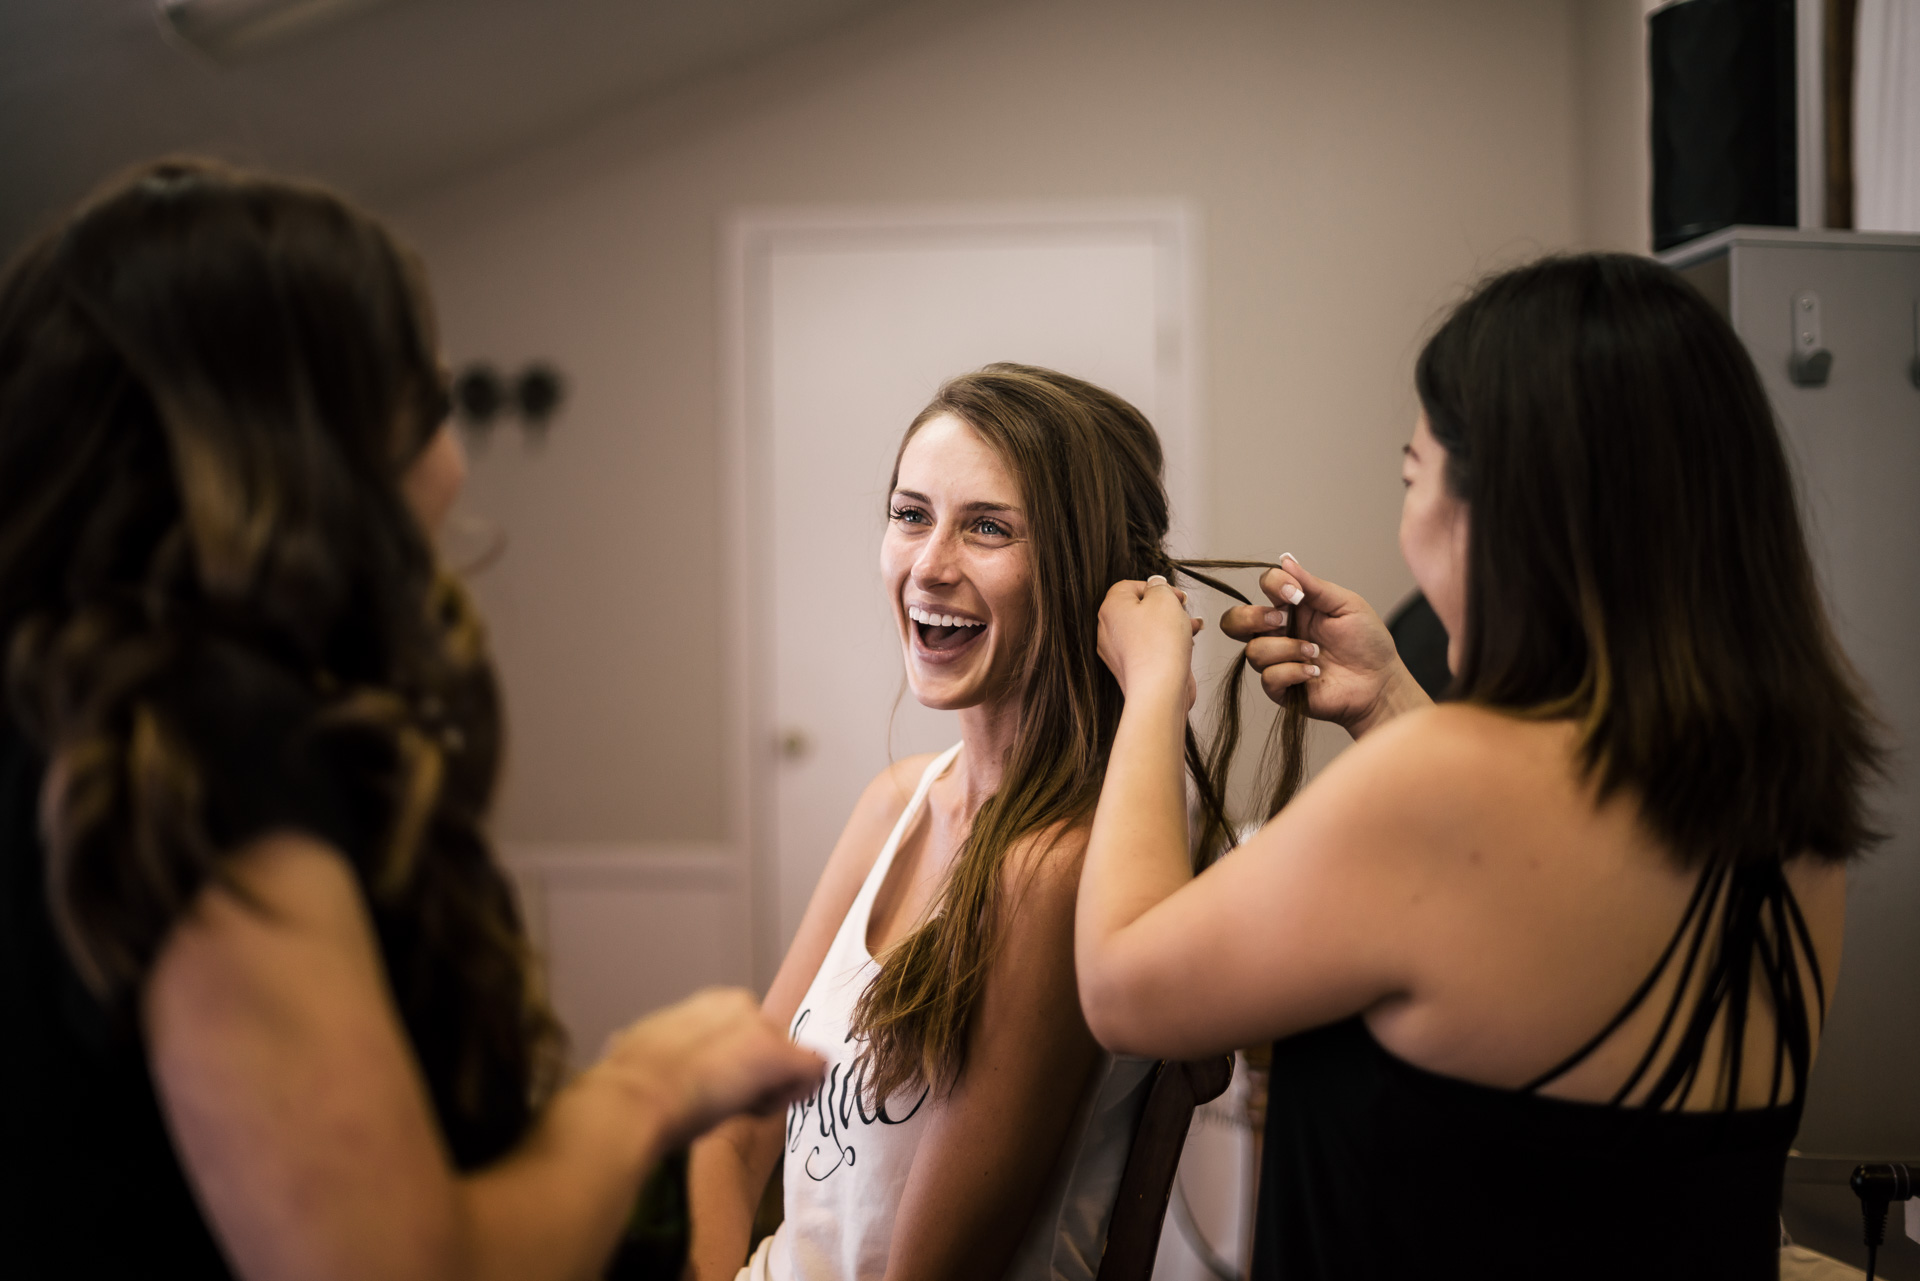 brides alughs with her bridesmaids as they do her hair at the secret garden located at the Historic Parish ranch in Oak Glen California